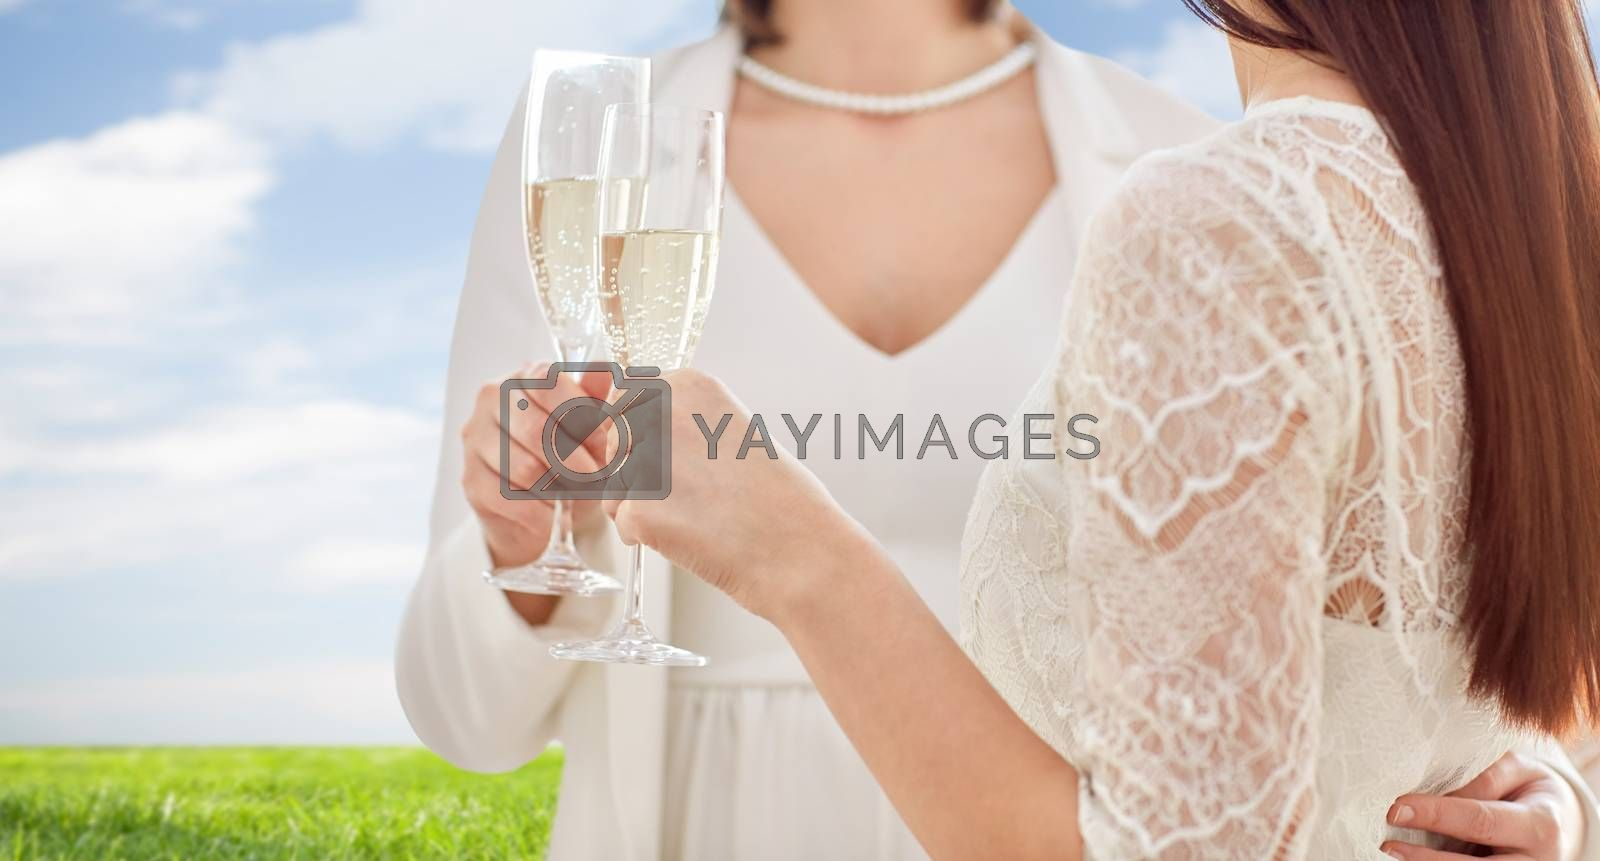 people, homosexuality, same-sex marriage, celebration and love concept - close up of happy married lesbian couple holding and clinking champagne glasses over blue sky and grass background